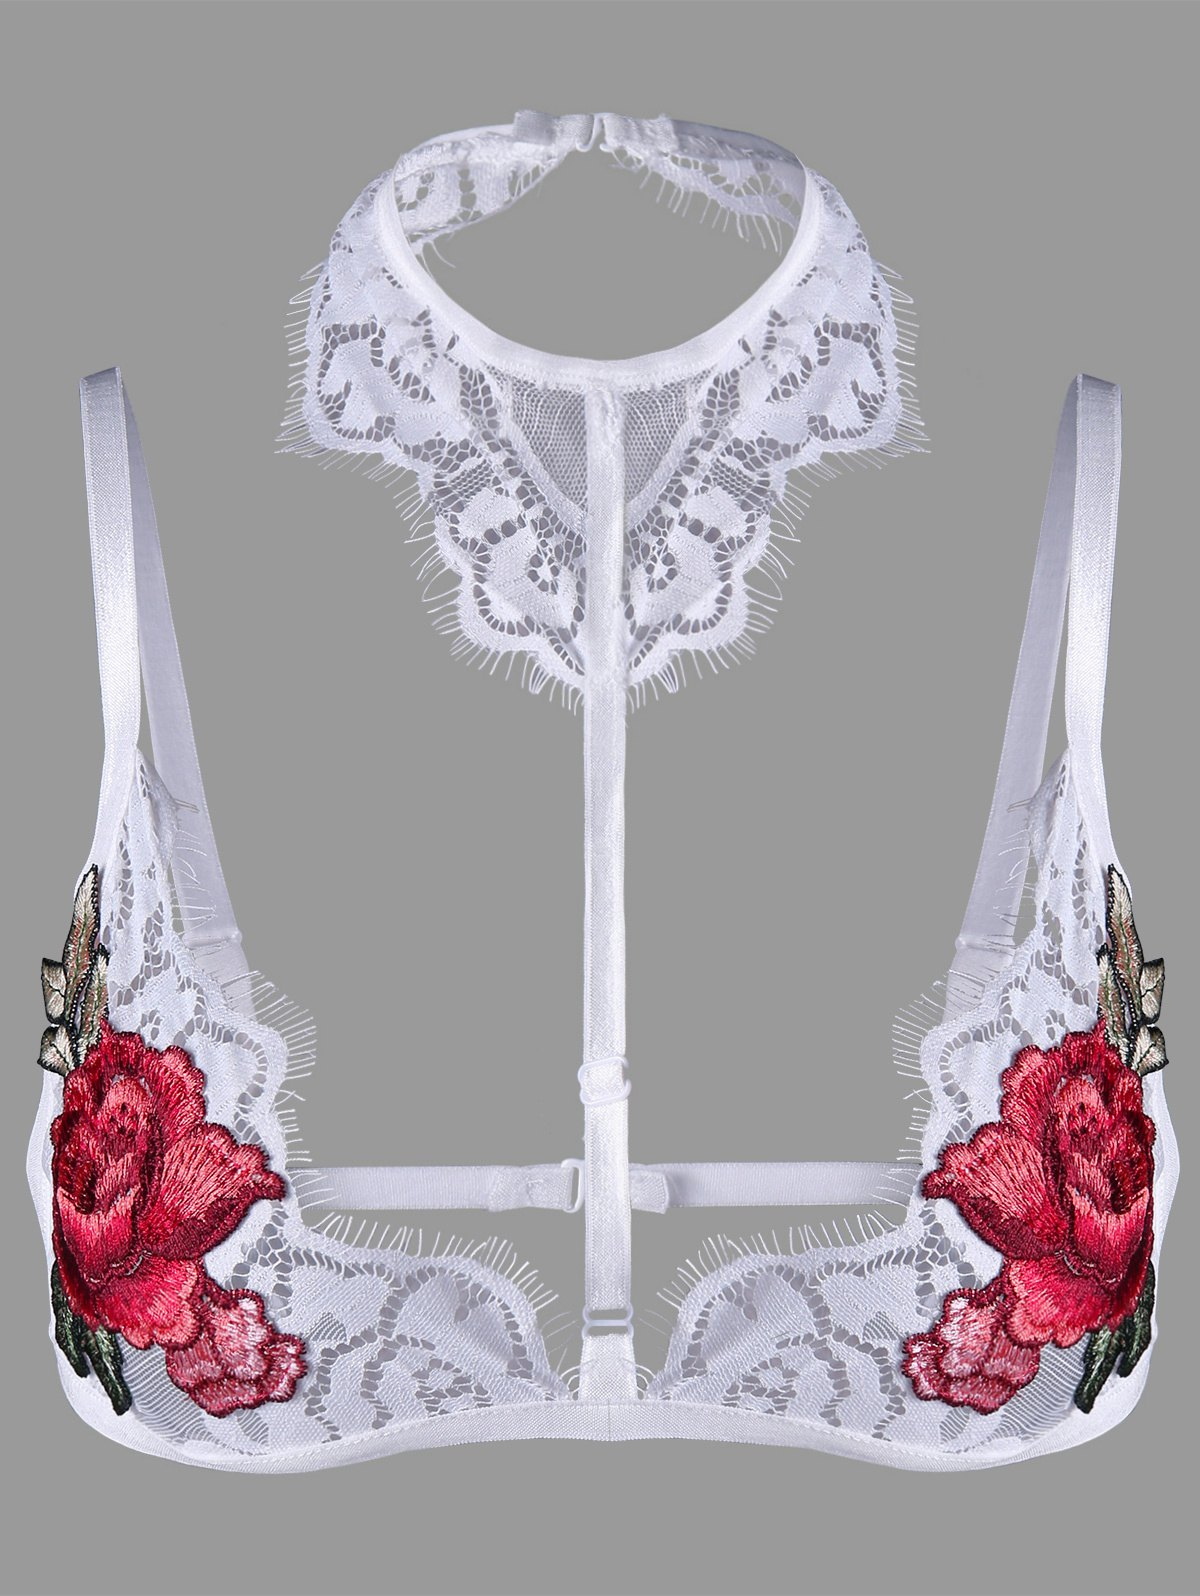 Lace Flower Embroidered Choker Bralette flessibile della gomma di silicone riscaldatore 250x300mm 220v 300w oil heater silicone heating pad industrial heaer 3d printer